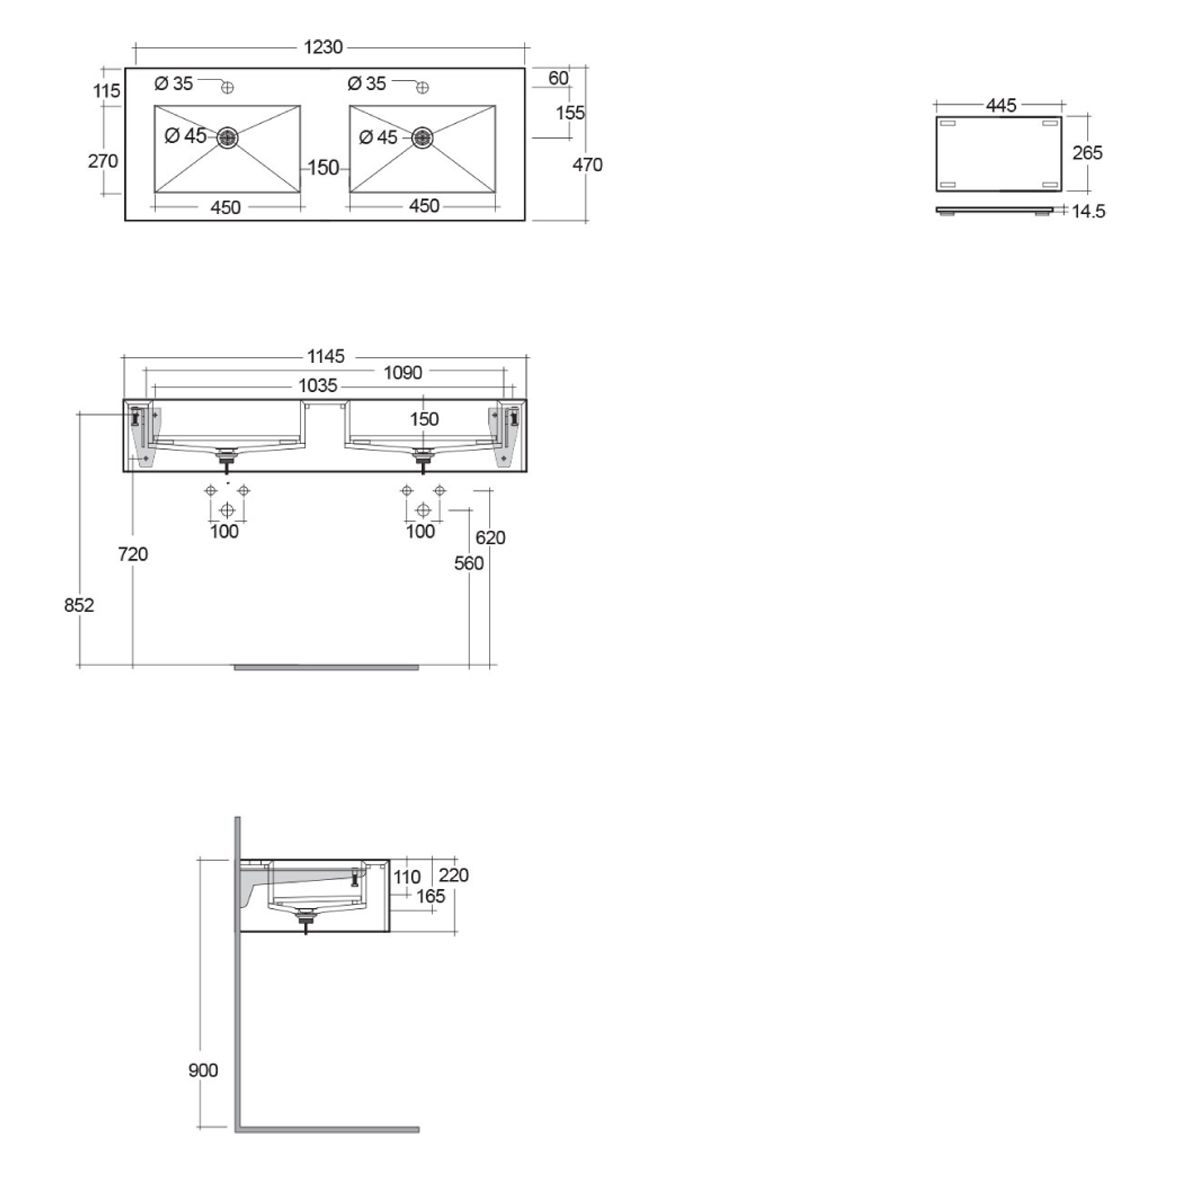 RAK Precious Macaubus Wall Hung Counter Basin 1200mm with Brackets Measurements